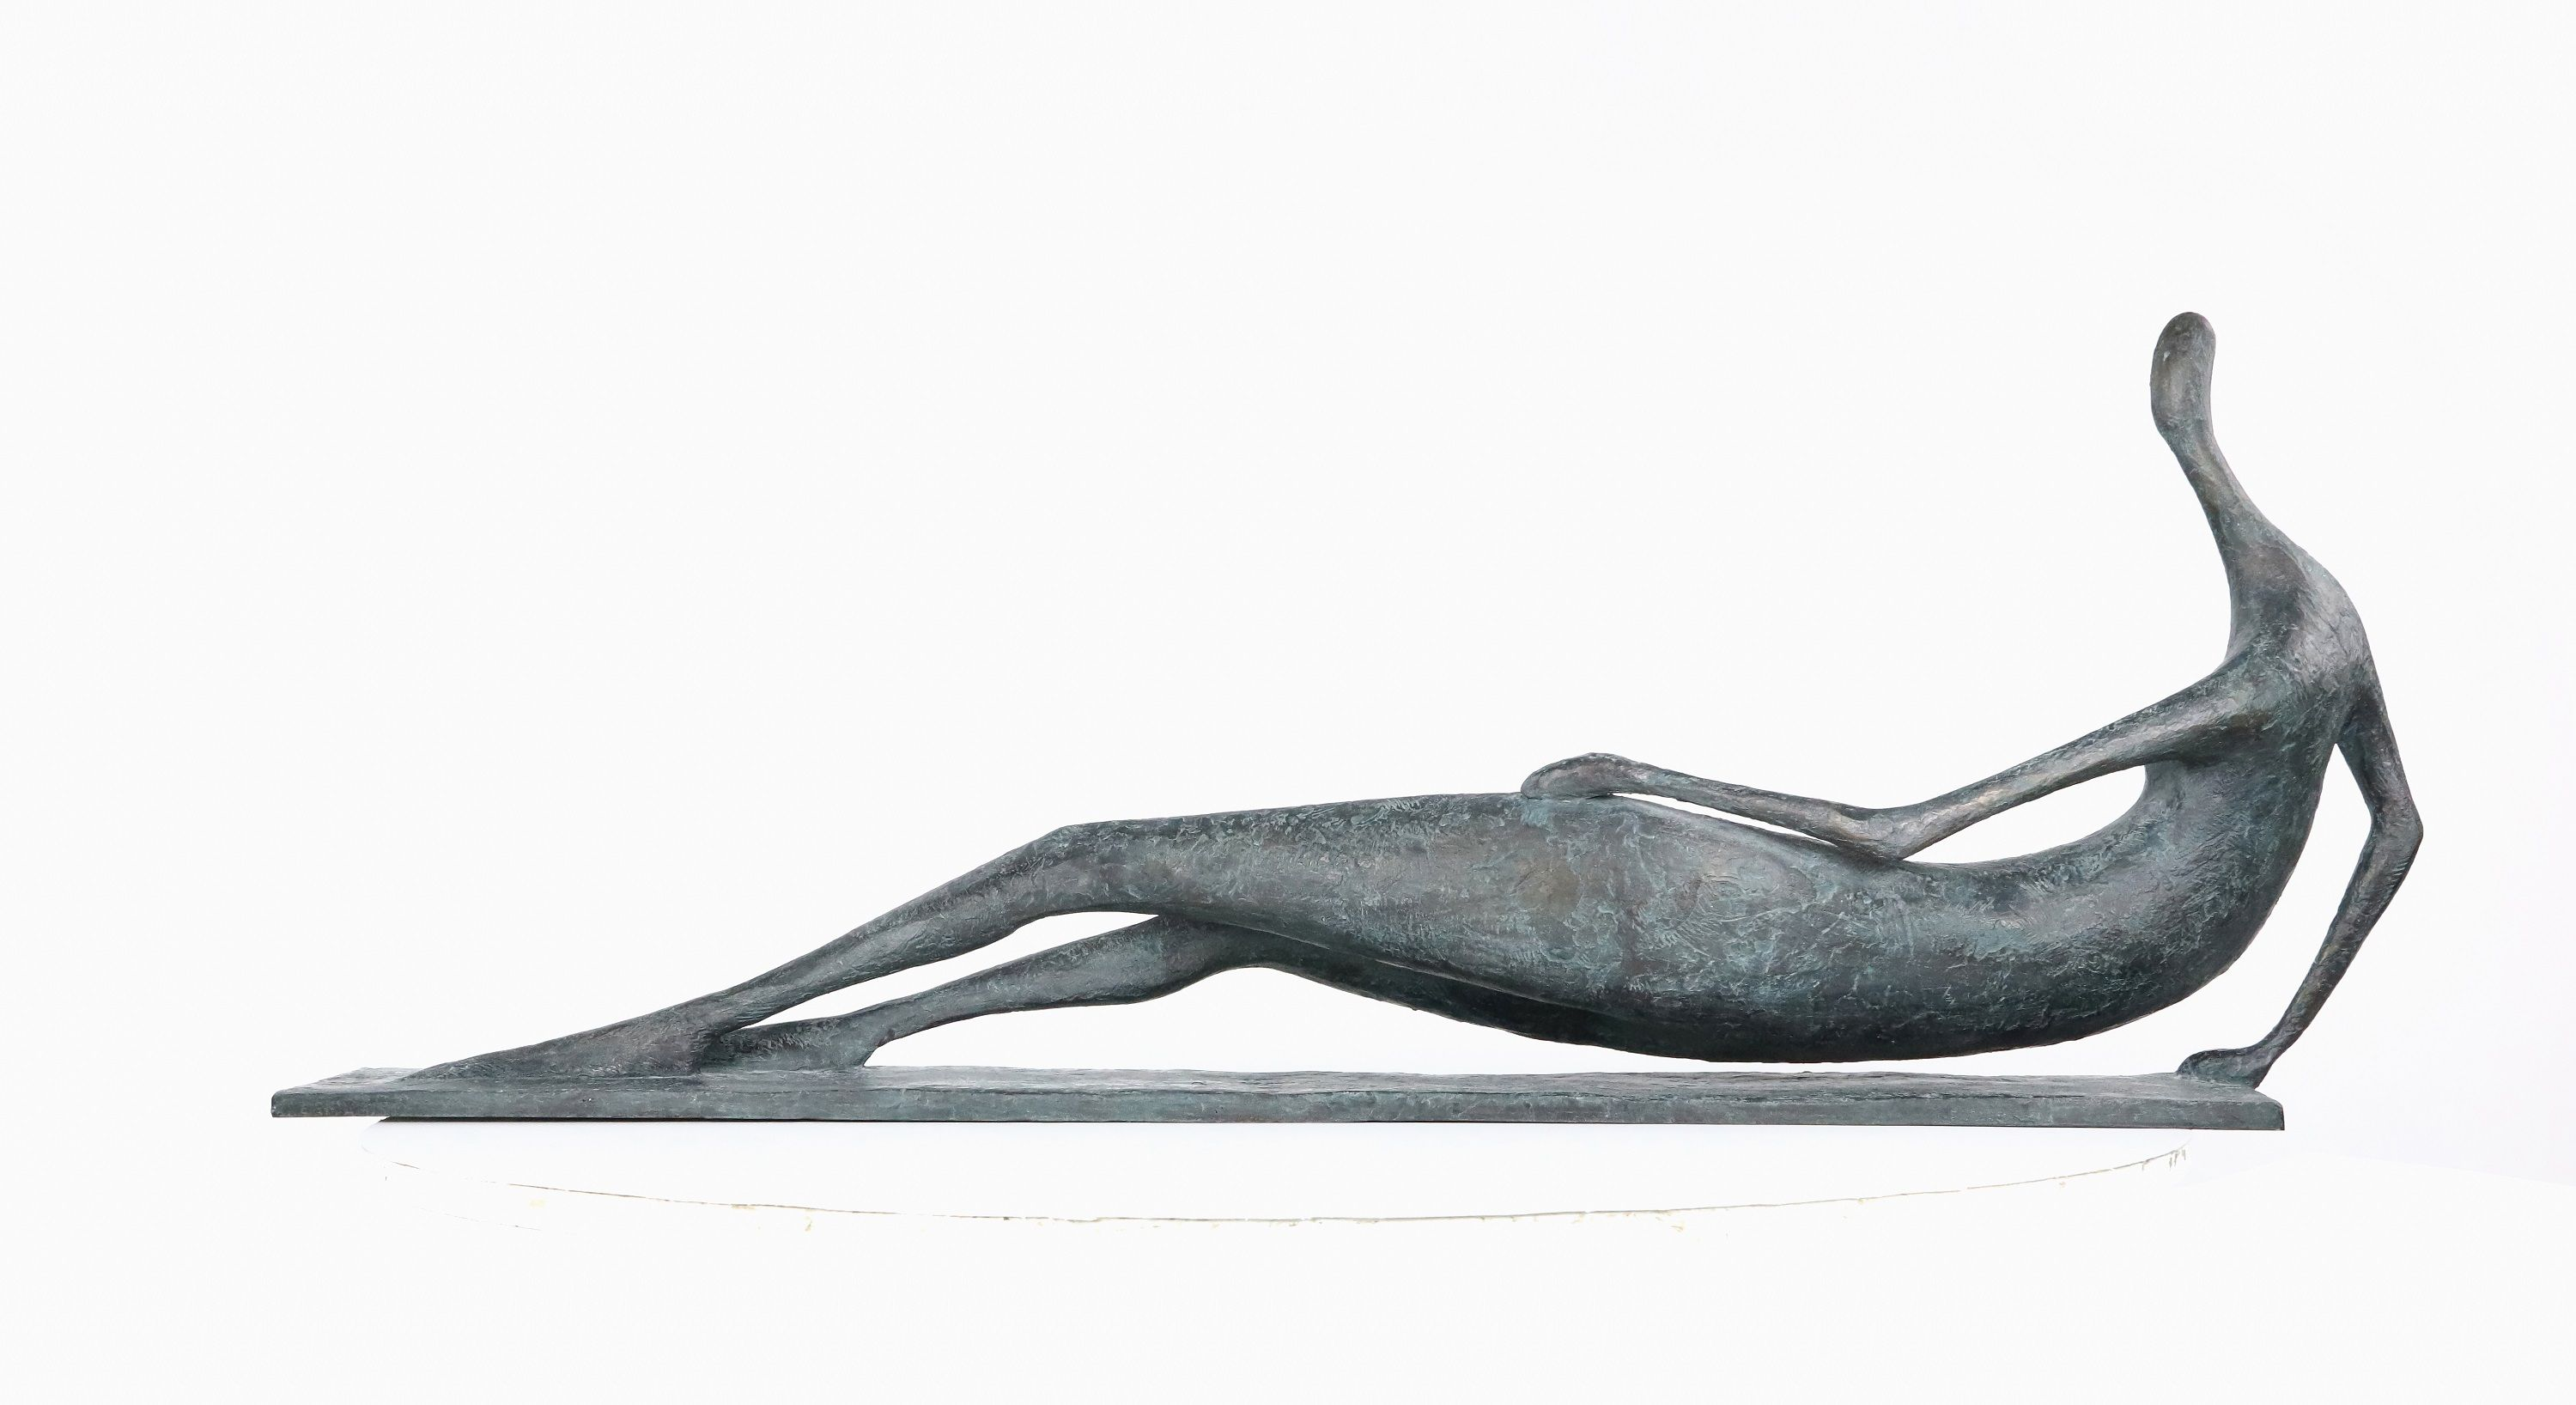 Large Lying Figure I ,Pierre Yermia,Sculpture, detail 2